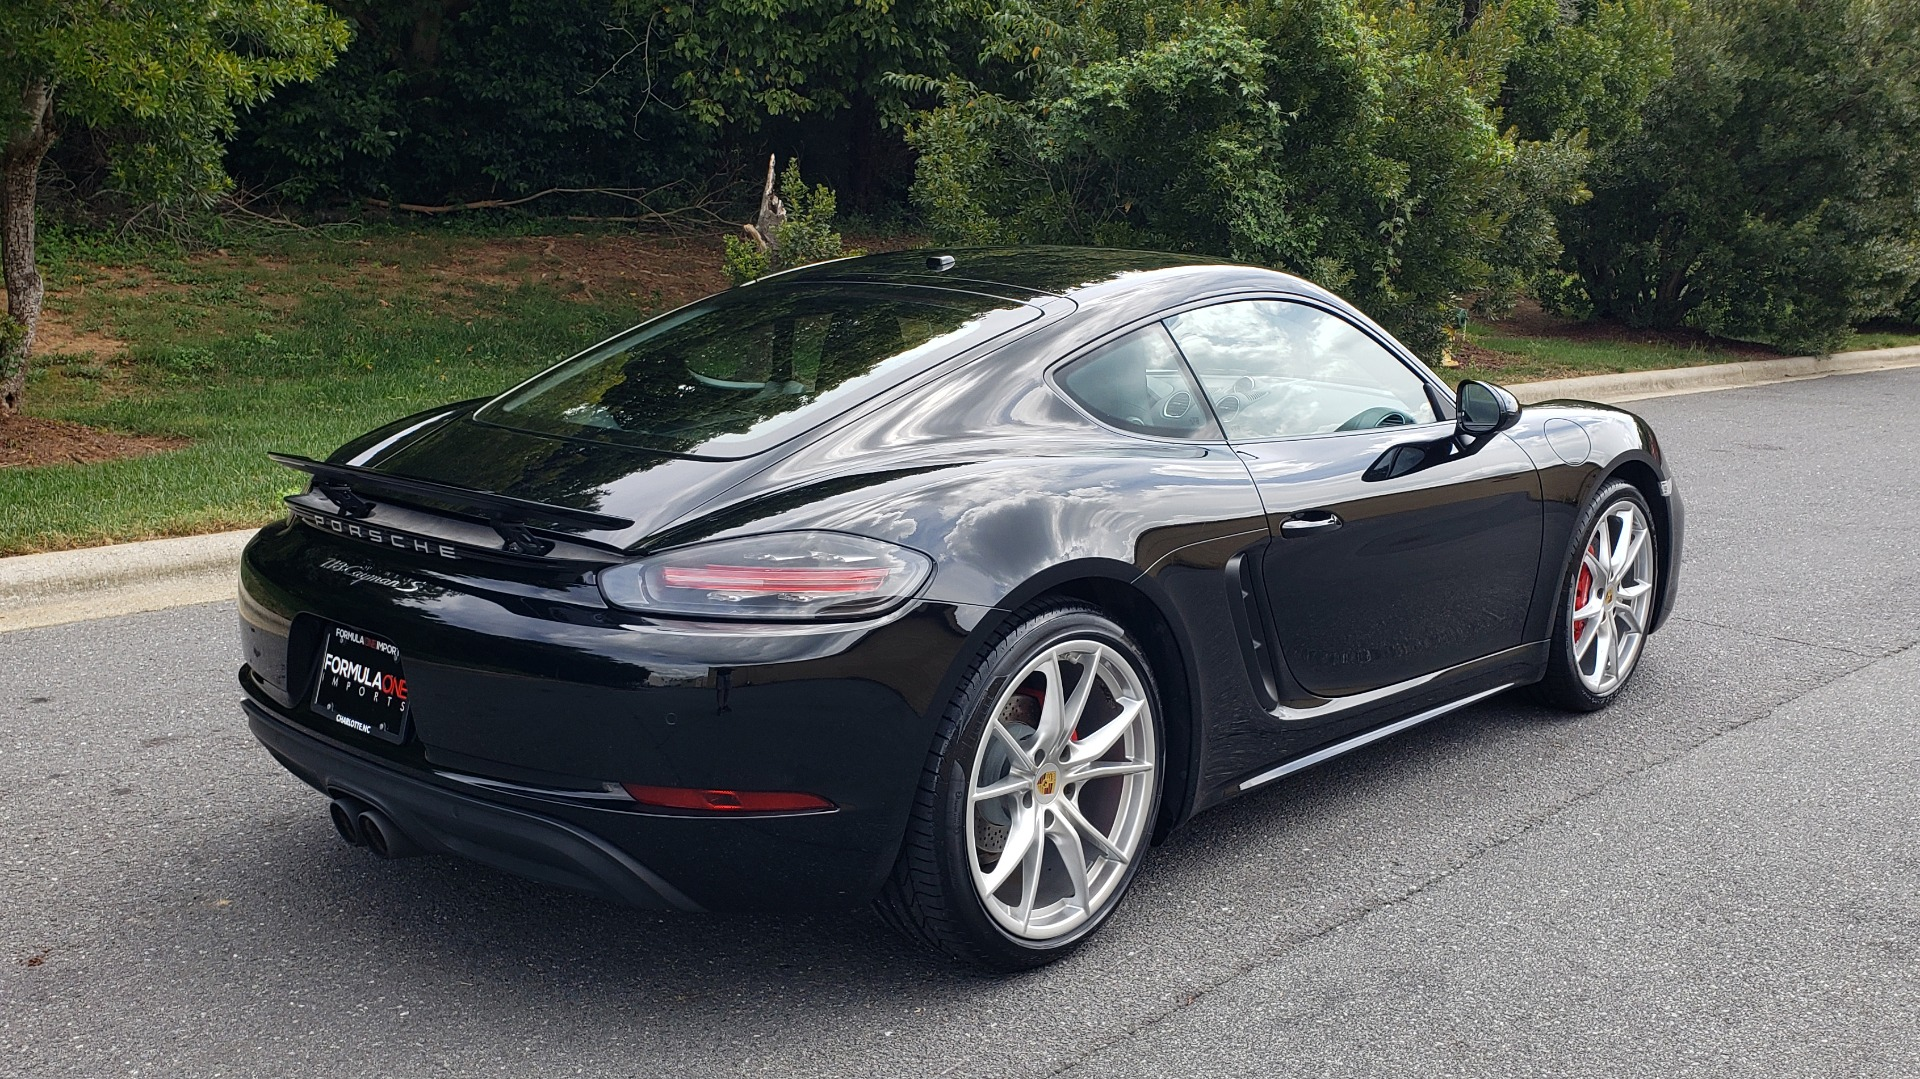 Used 2018 Porsche 718 CAYMAN S / PREM PKG PLUS / PDK / NAV / BOSE / CHRONO / SPORT EXHAUST for sale Sold at Formula Imports in Charlotte NC 28227 6